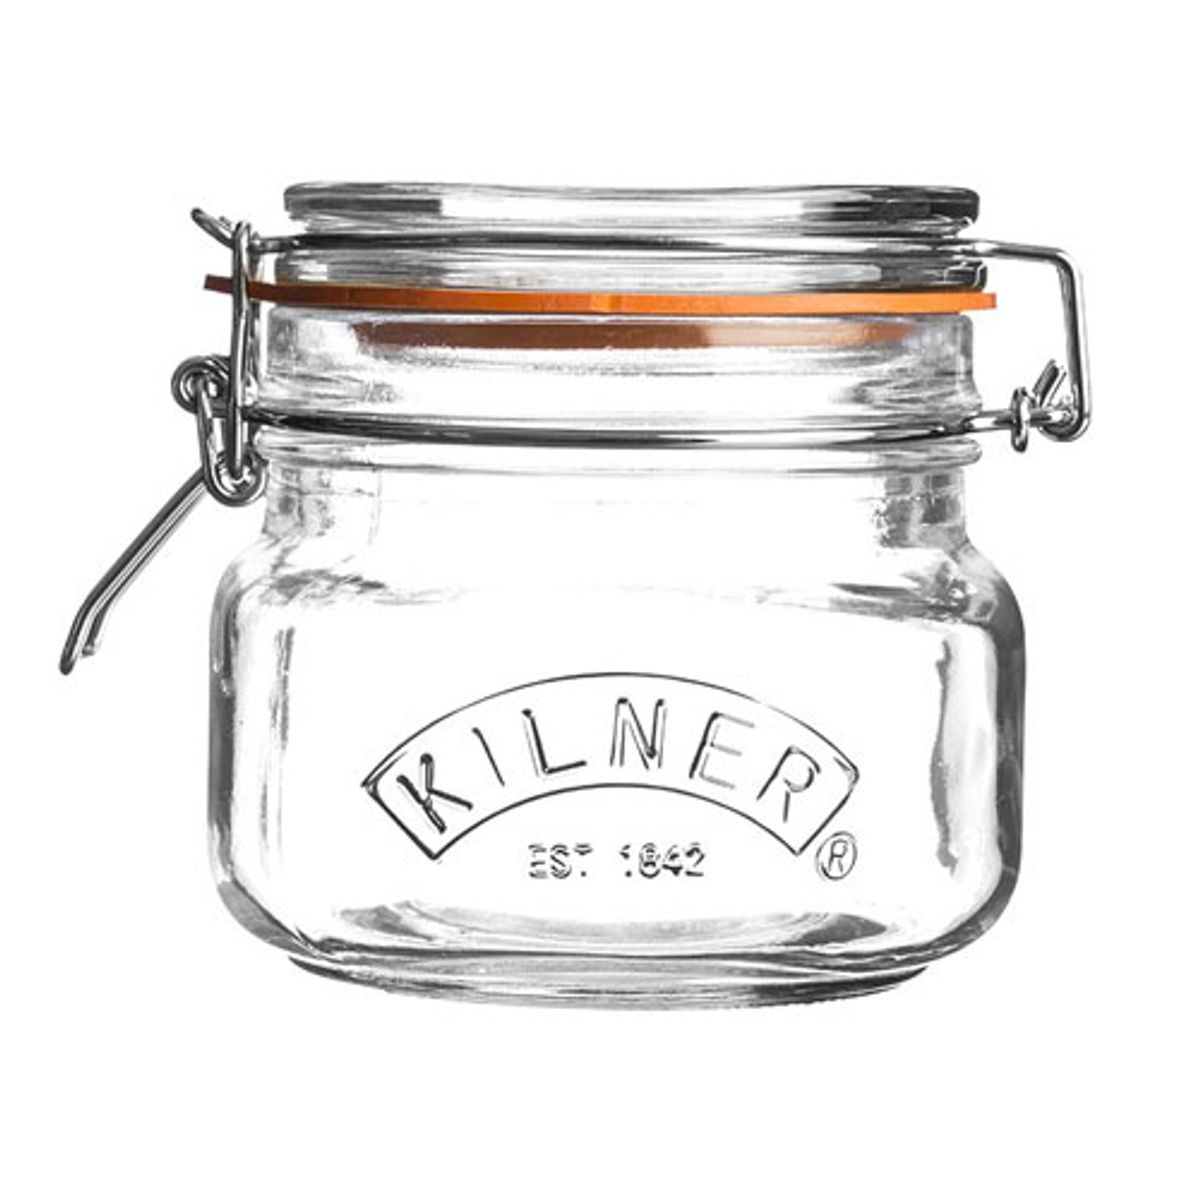 Pot de conservation en verre transparent 0,5 L Kilner